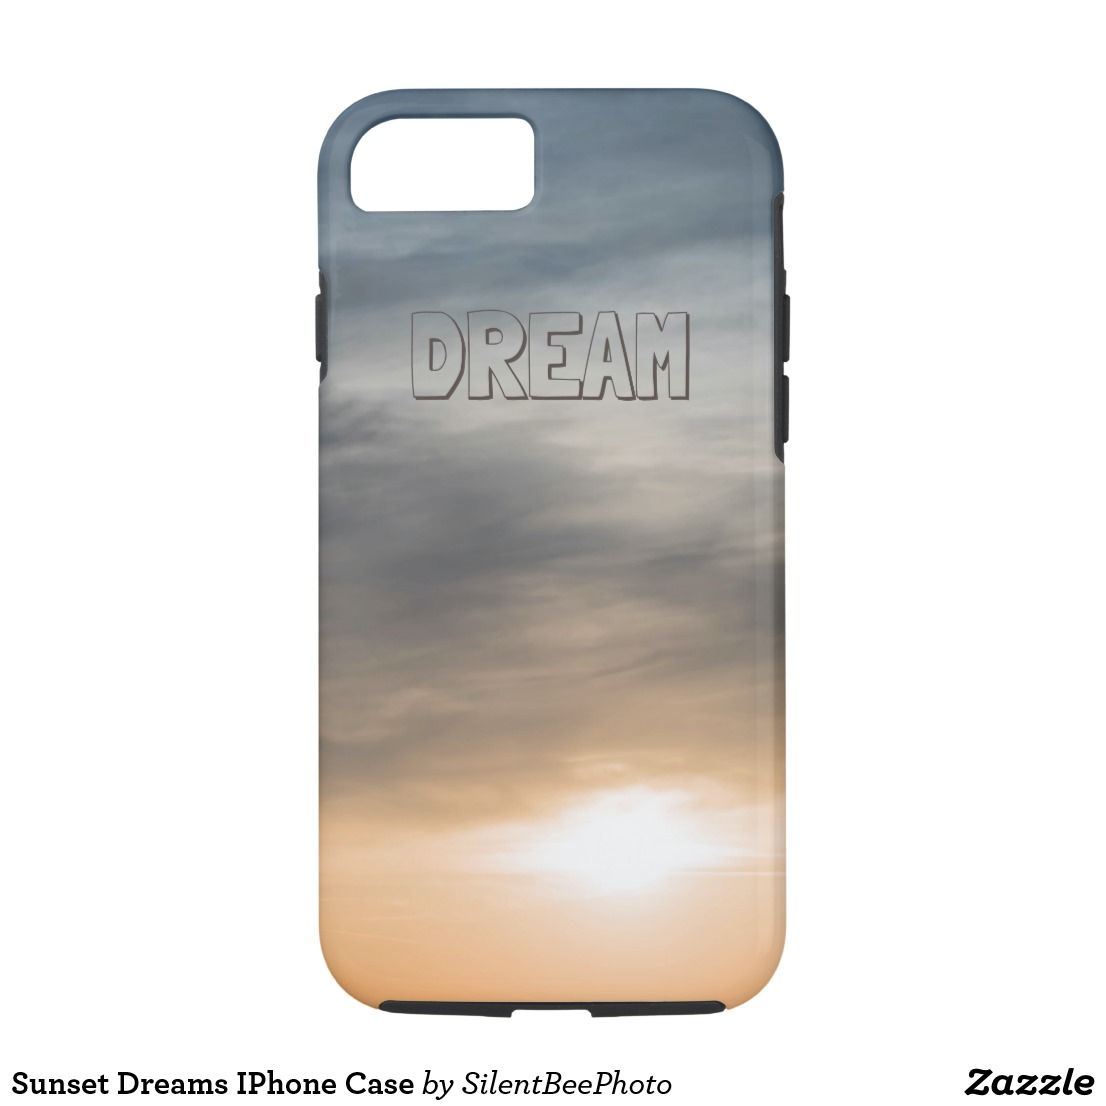 Sunset Dreams IPhone Case Iphone cases